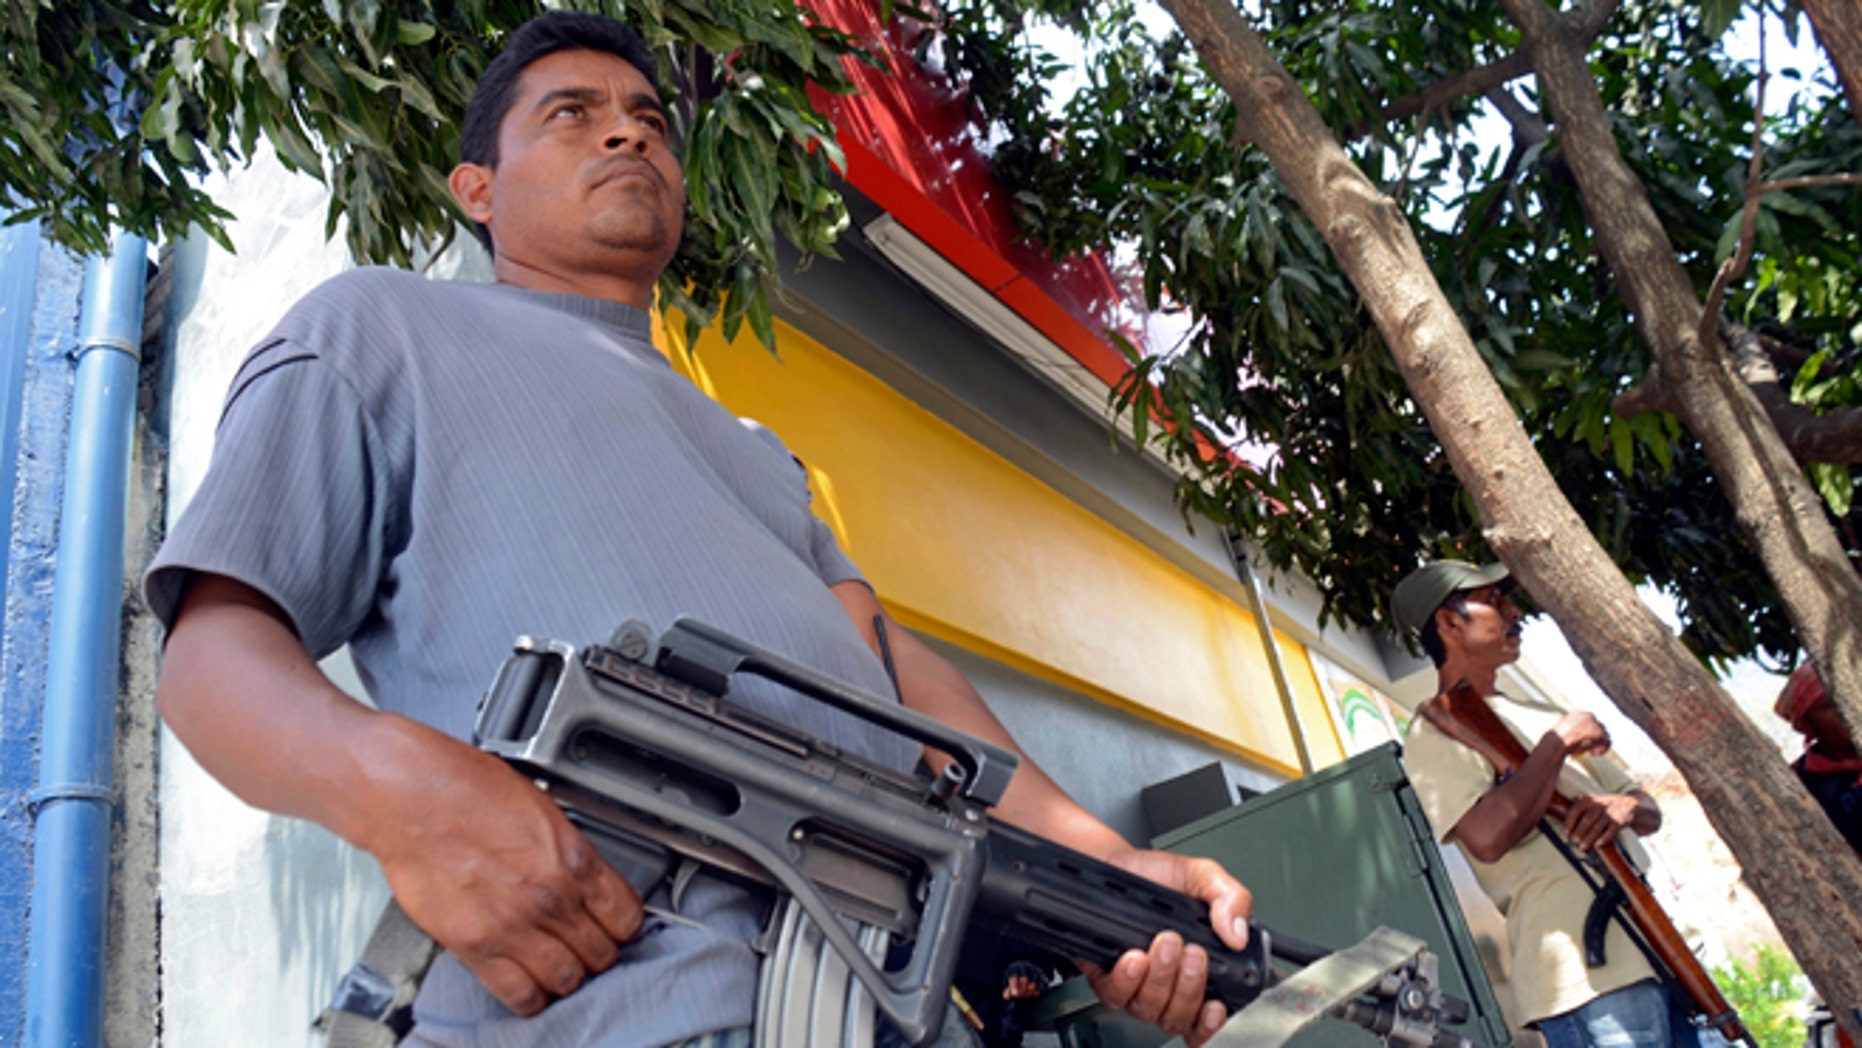 March 27, 2013: A group of armed vigilantes stand at the entrance to the town of Tierra Colorada, Mexico. Hundreds of armed vigilantes have taken control of this town on a major highway in the Pacific coast state of Guerrero, arresting local police officers and searching homes after a vigilante leader was killed. Several opened fire on a car of Mexican tourists headed to the beach for Easter week.